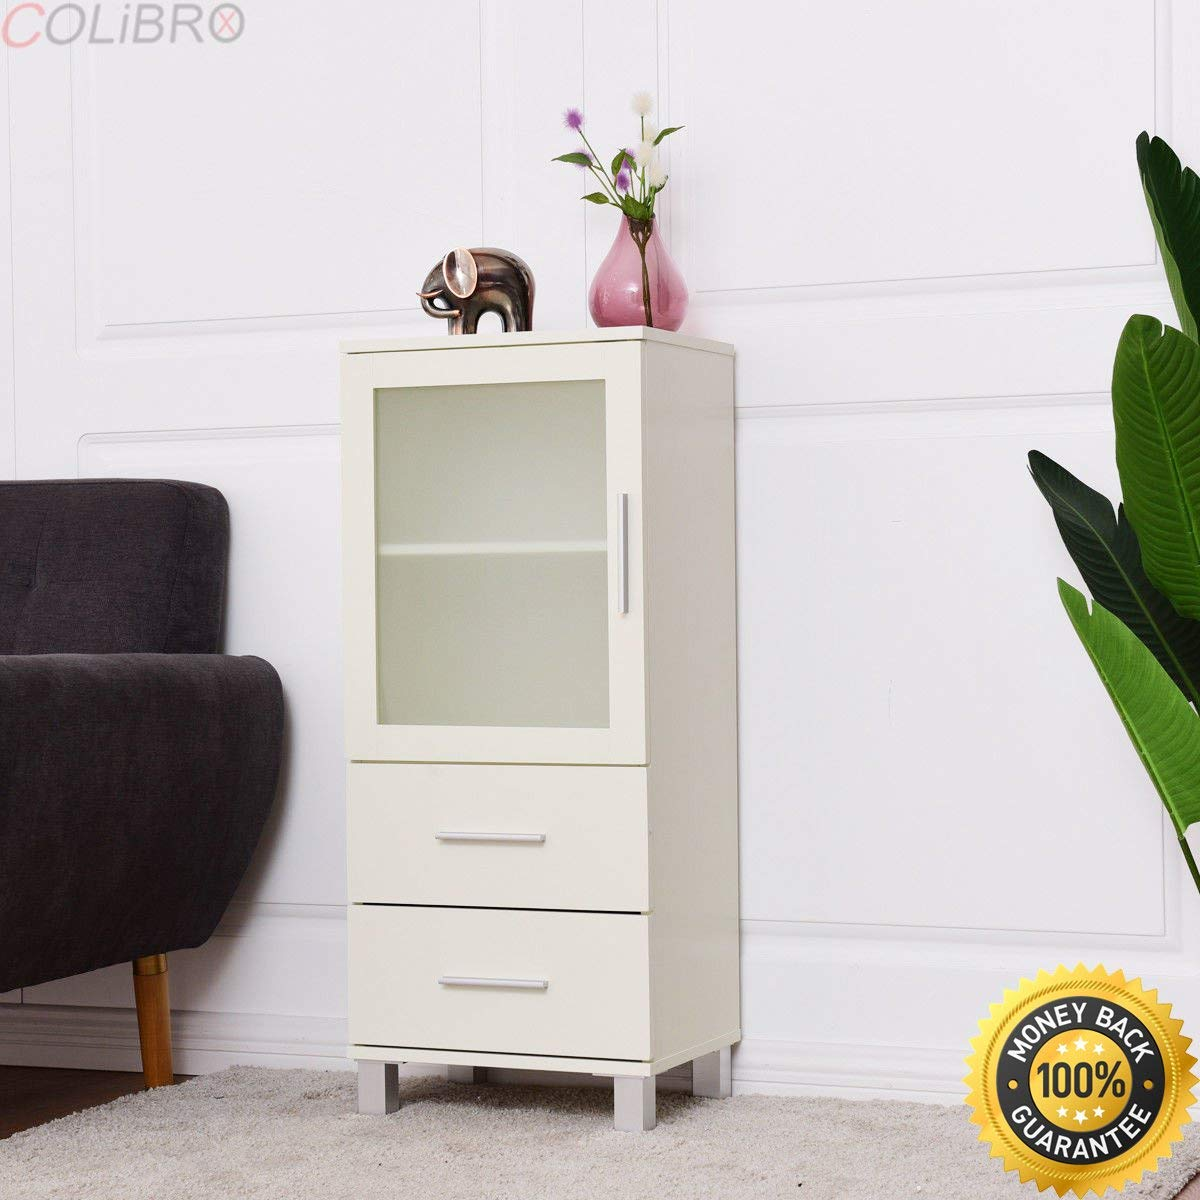 Cheap Free Standing Bathroom Cabinets Find Free Standing Bathroom Cabinets Deals On Line At Alibaba Com